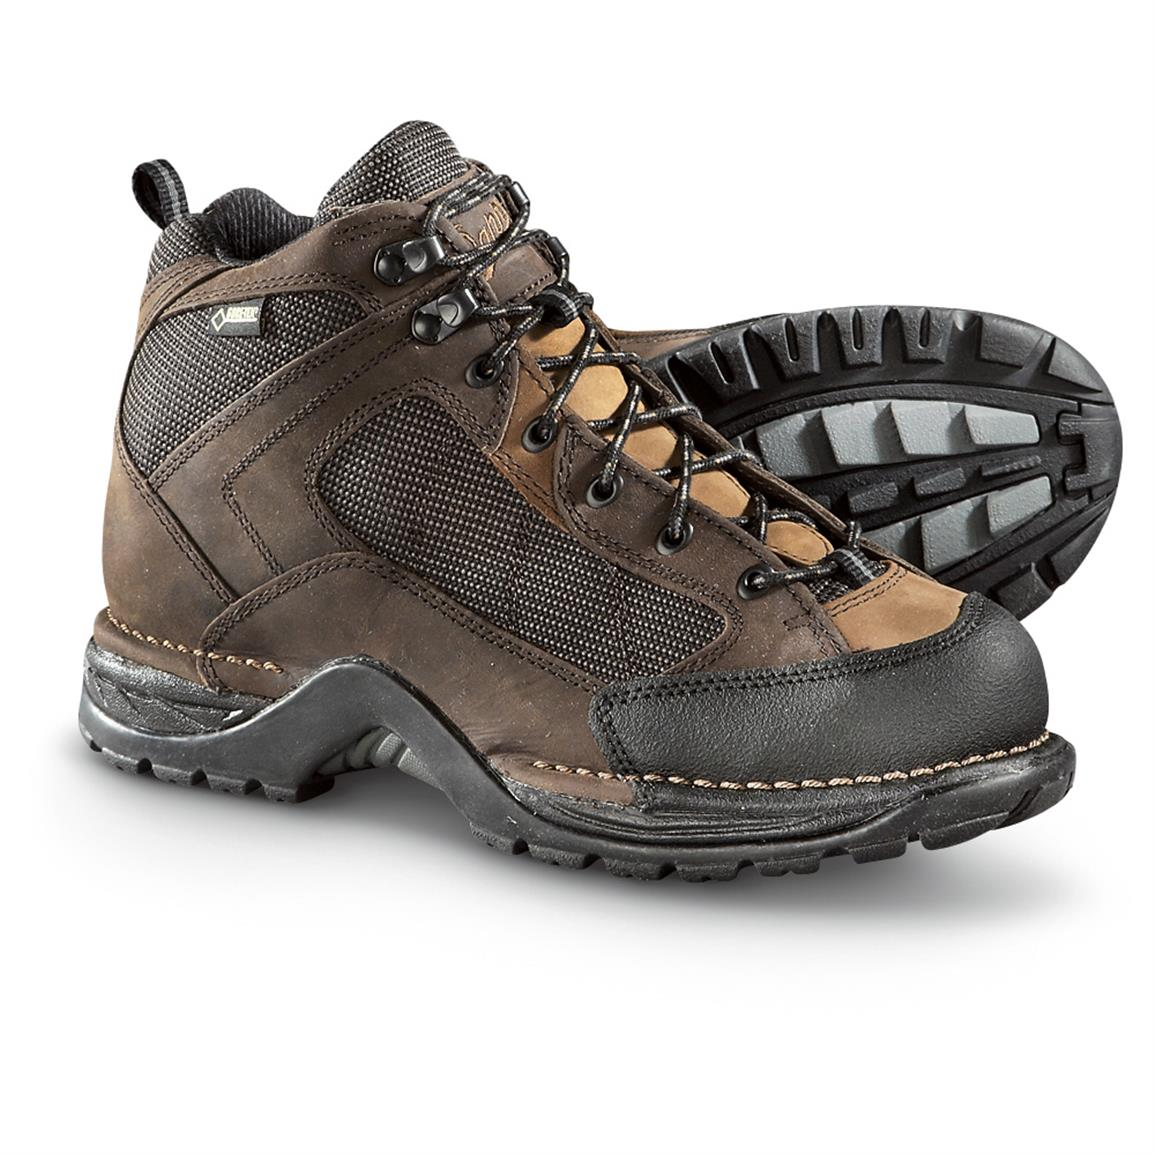 Danner Safety Toe Boots Coltford Boots